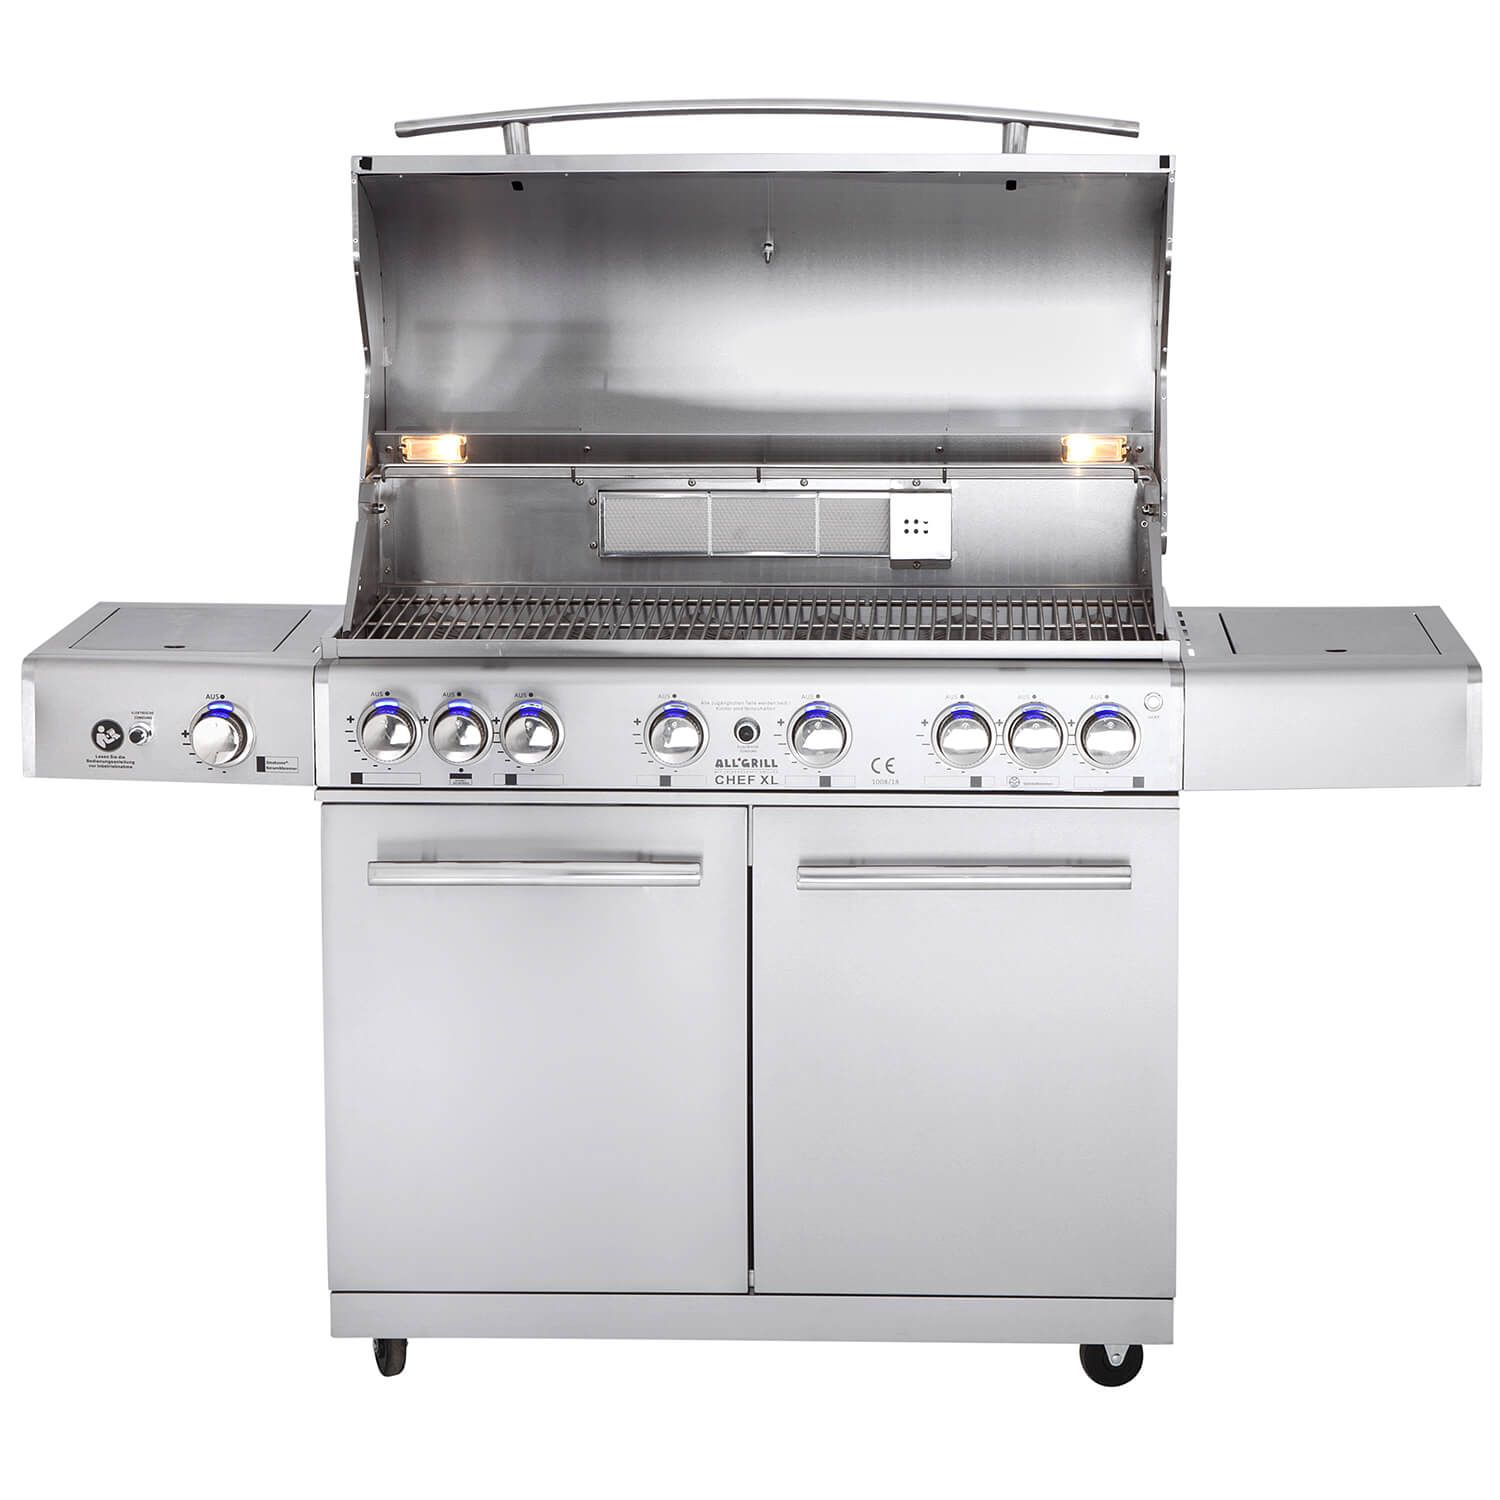 Top Line All Grill Chef Xl Mit Air System Volledelstahl Gas Grill Mit All Grill Air System Gesamtleistung 31 7 Kw Gasgrill Edelstahl Grill Grilltipps